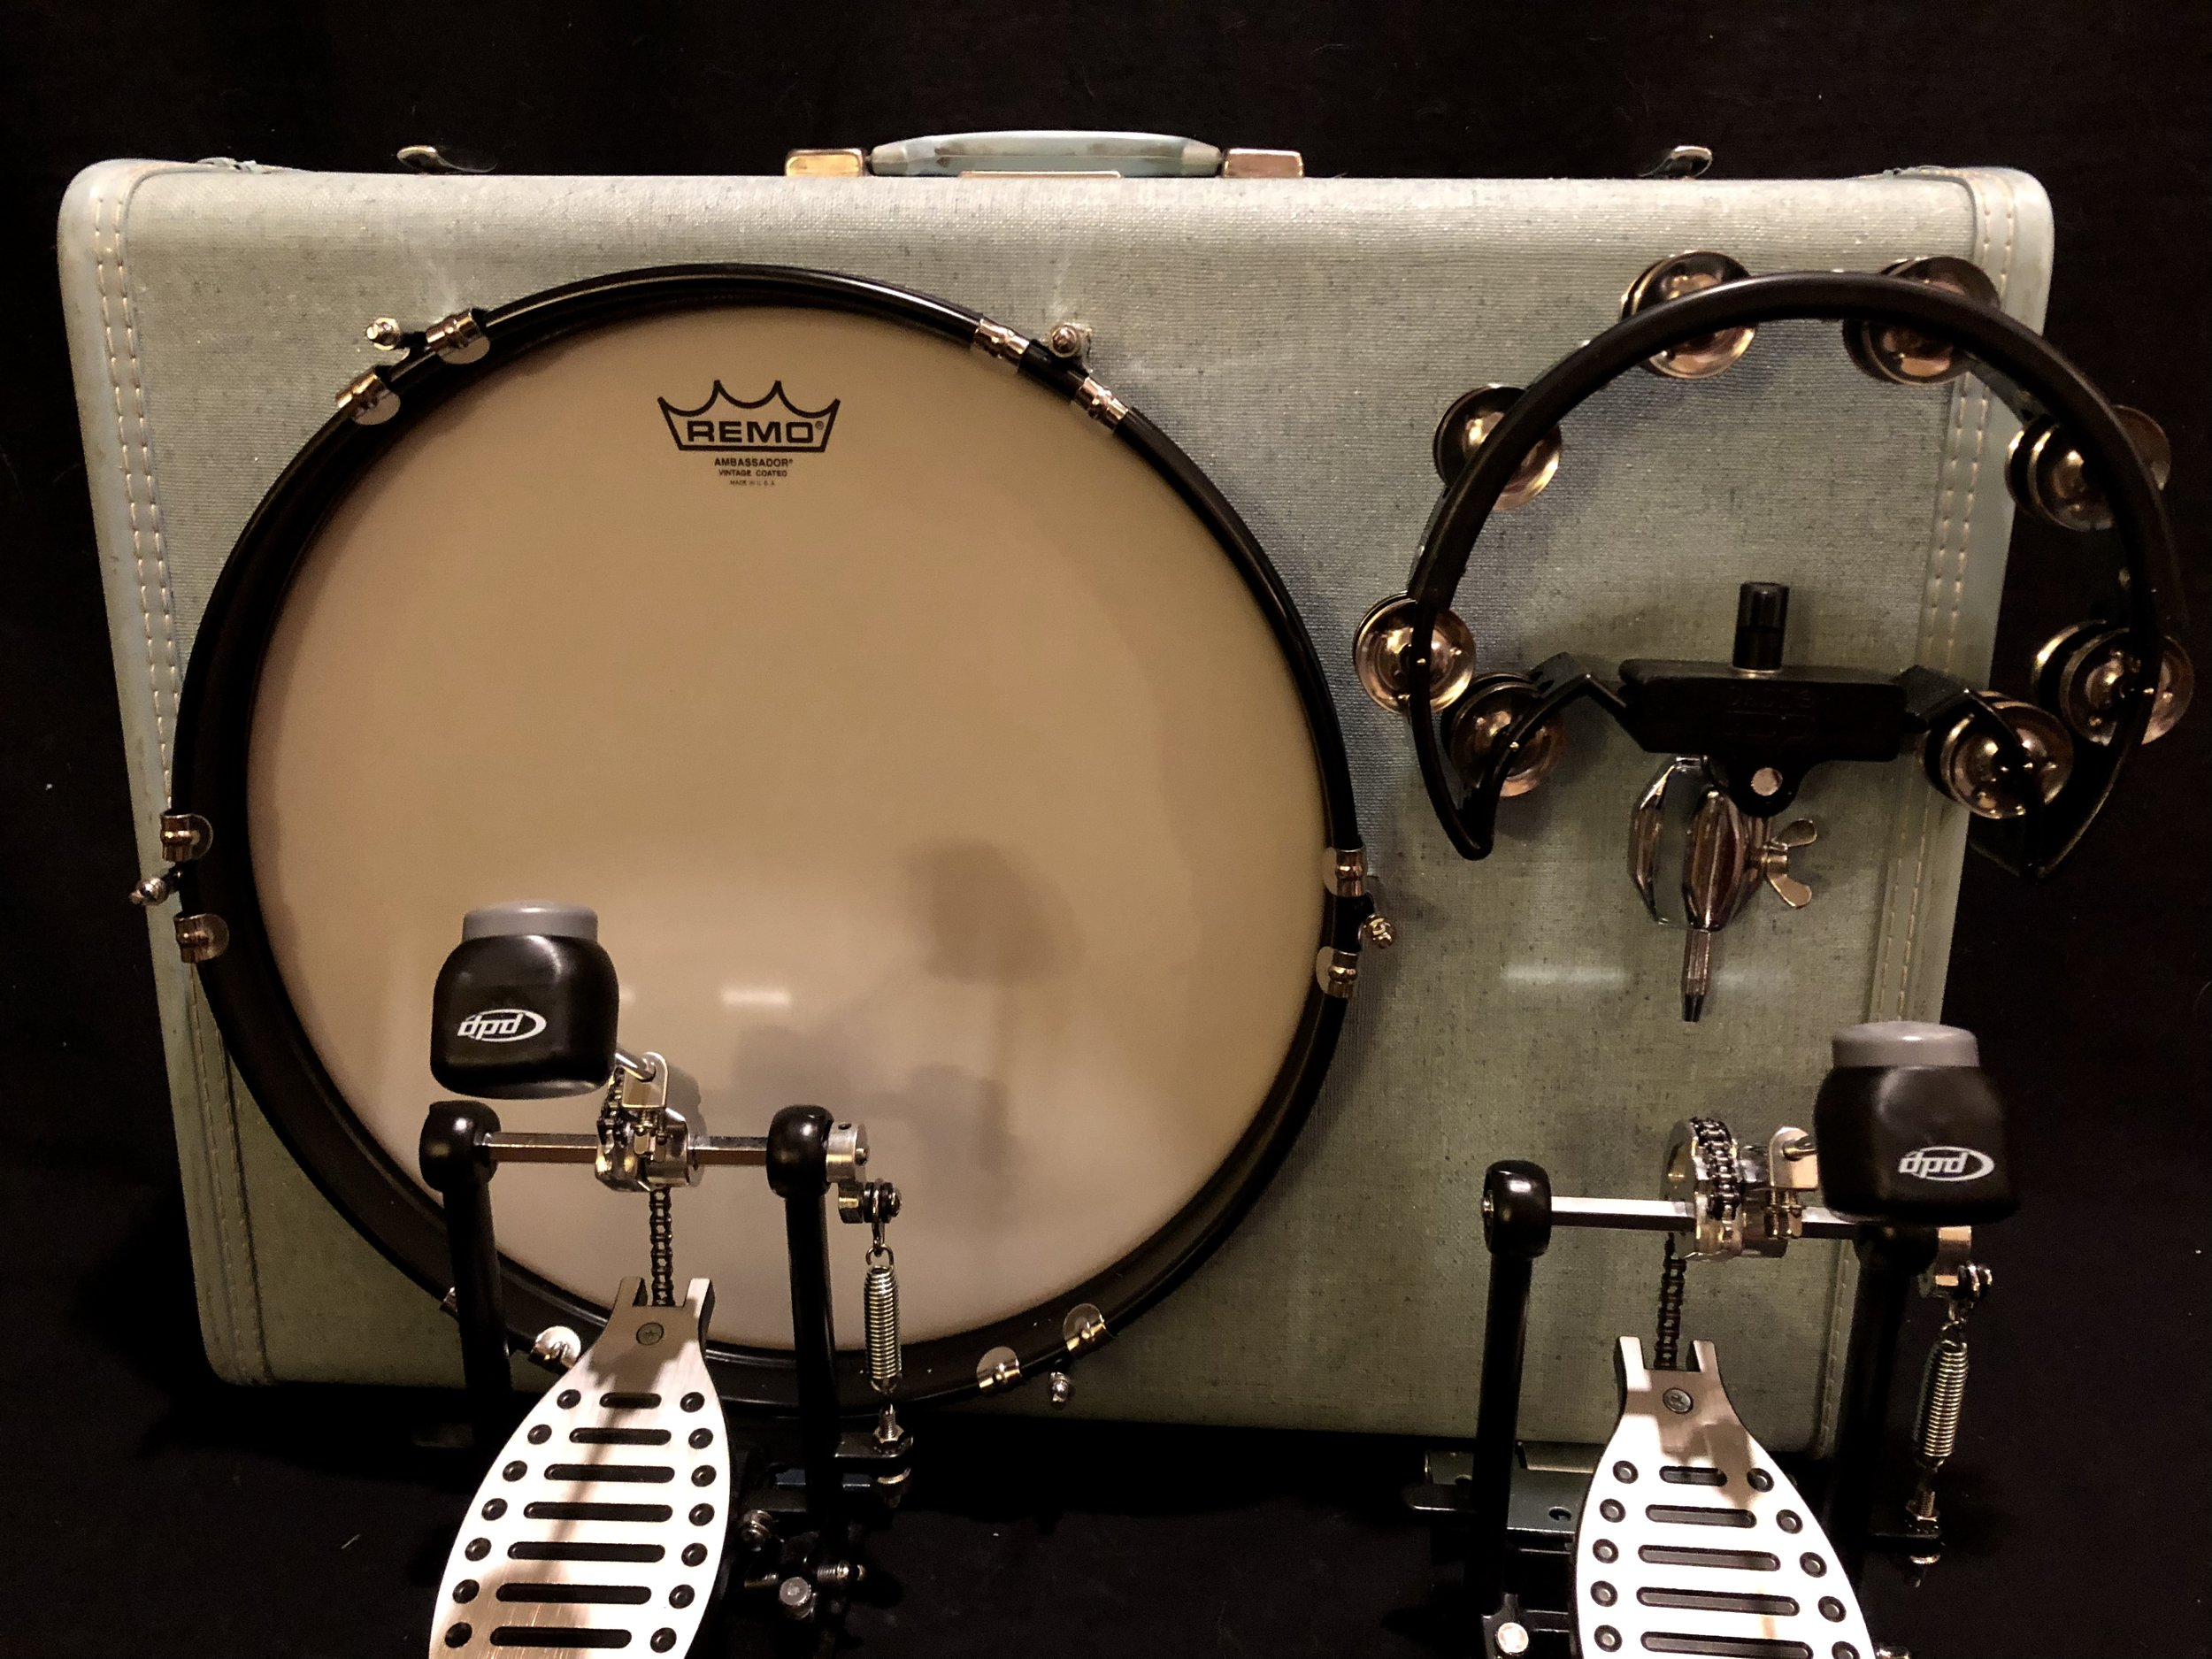 - 16'bass royal travelerGREAT SUITCASE KICK DRUM! VERY EASY TO SET UP, PLAYS GOOD :) DRUM COMPANY GOT IT SHIPPED RIGHT AWAY AND ARRIVED IN A TIMELY MANNER. THANKS SO MUCH!COLLIN J. - WASHINGTON, OCTOBER 11, 2018